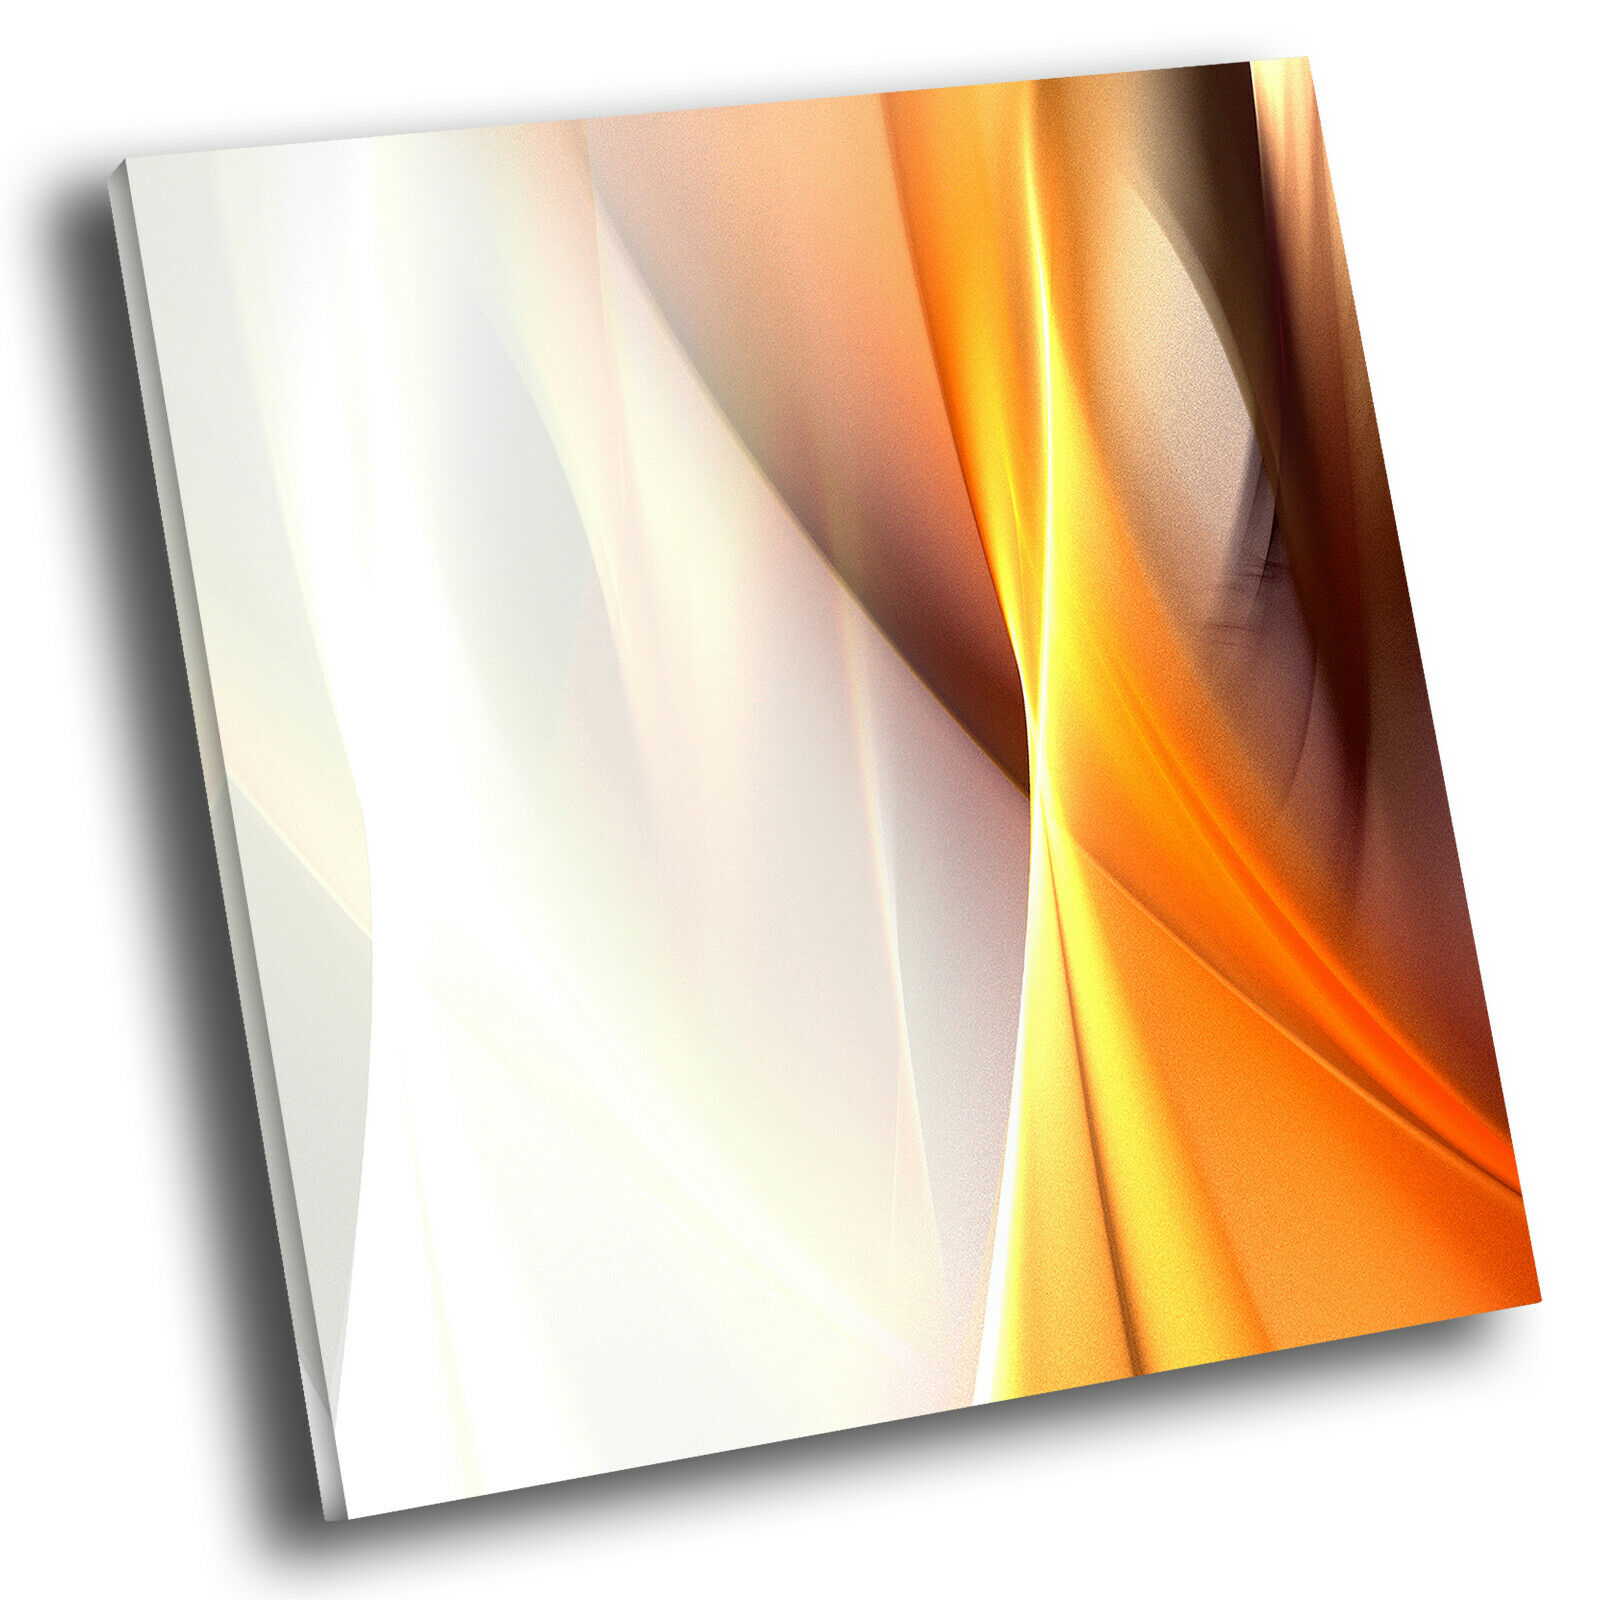 Gelb Orange grau Wave Square Abstract Canvas Wall Art Large Picture Prints